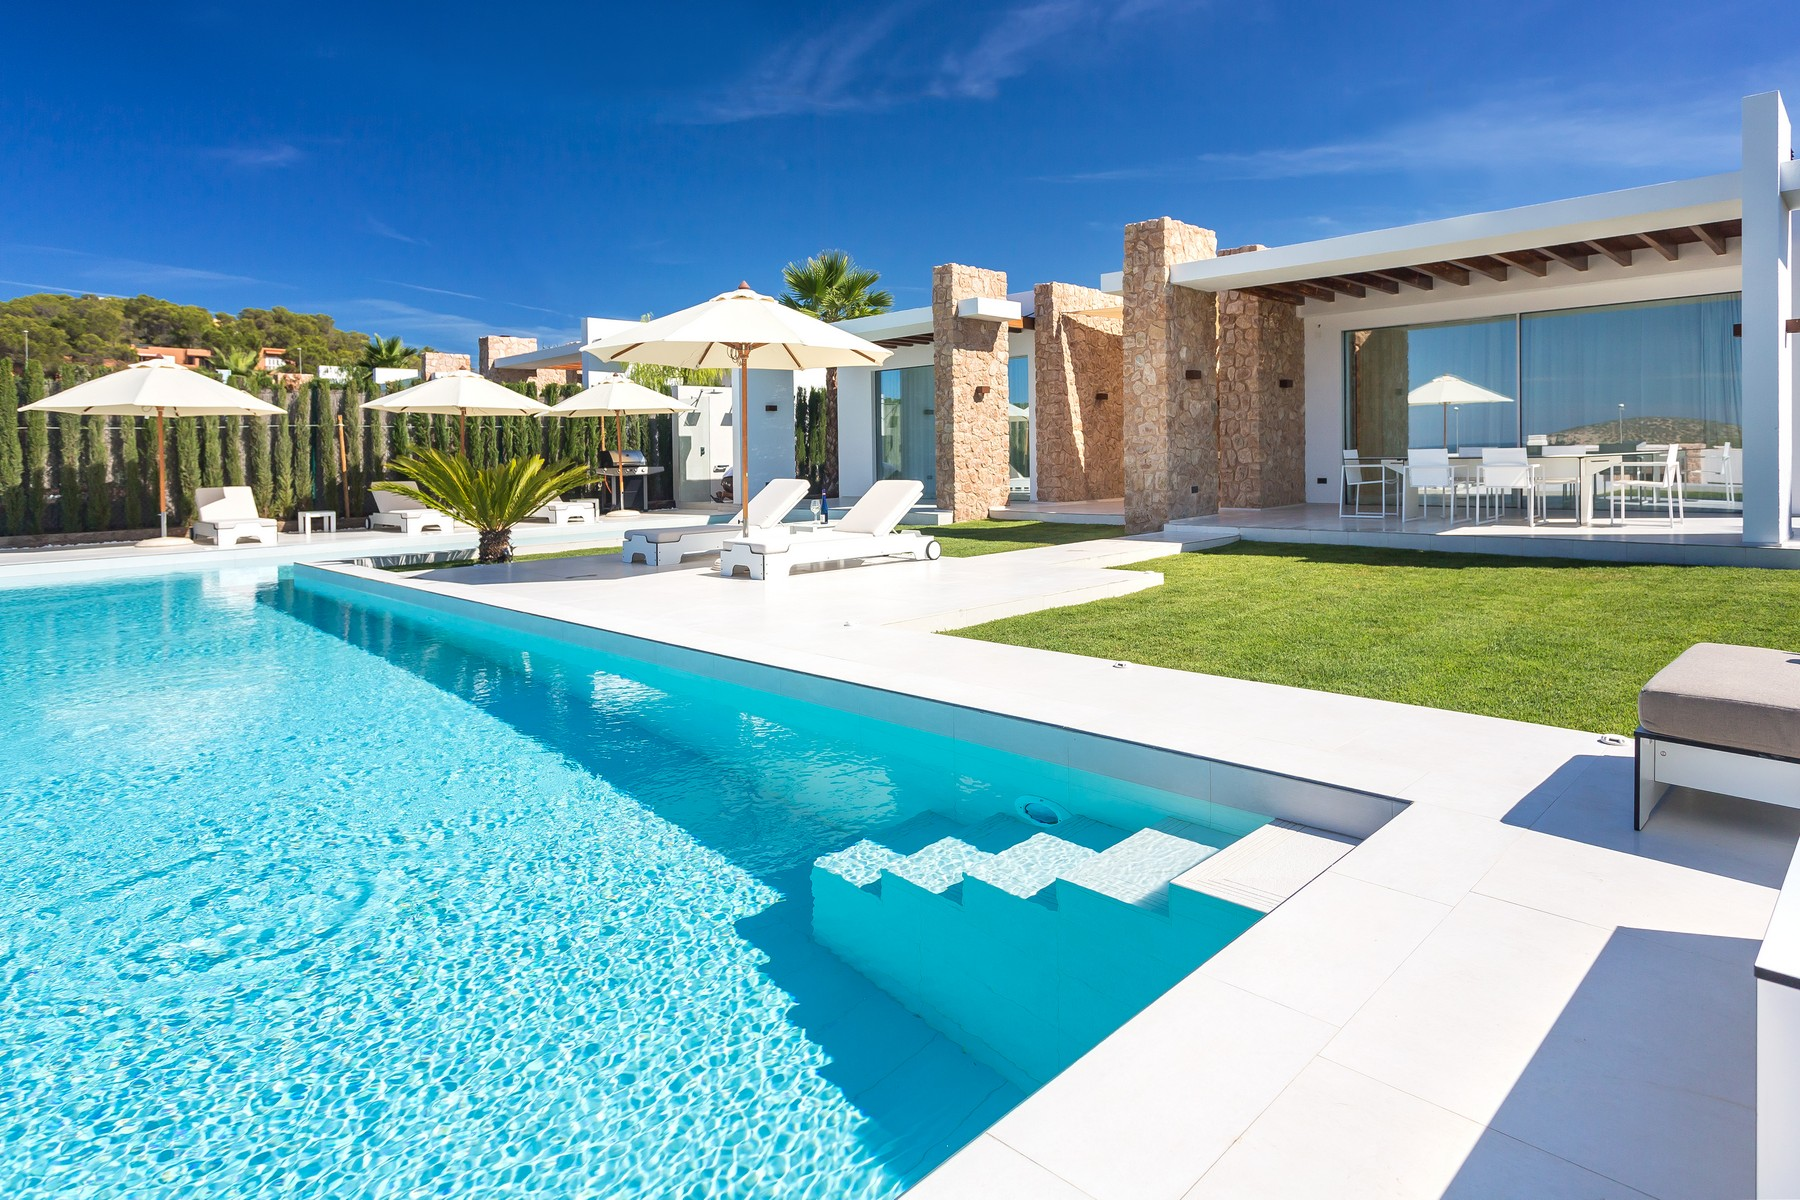 Casa Unifamiliar por un Venta en New Villa with Sunset and Sea Views Ibiza, Ibiza, 07860 España